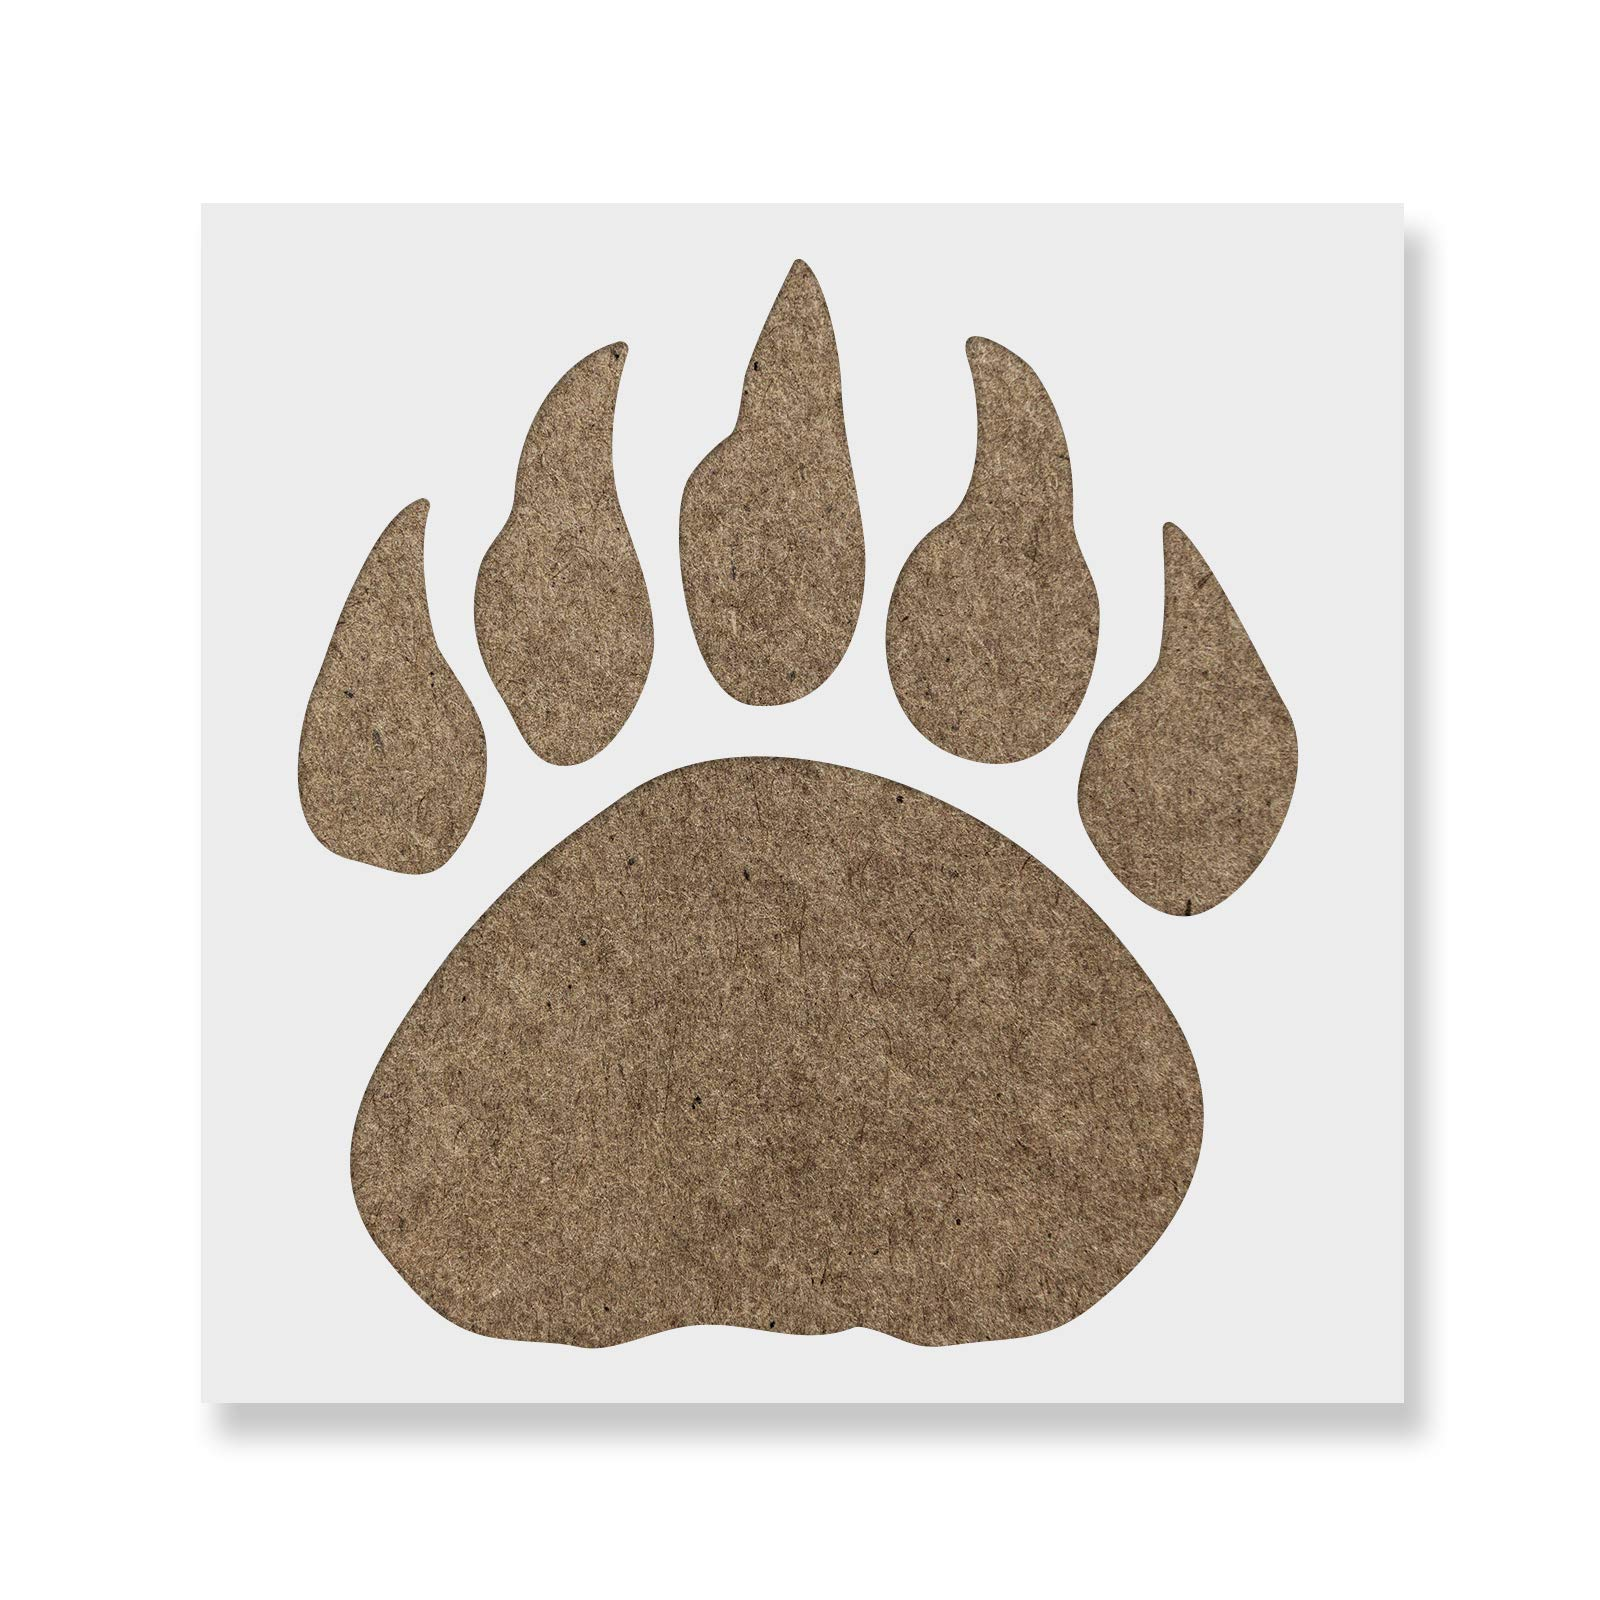 Bear Claw Stencil for Walls and Crafts - Reusable Stencil of a Bear Claw for Painting in Small & Large Sizes - Made in USA